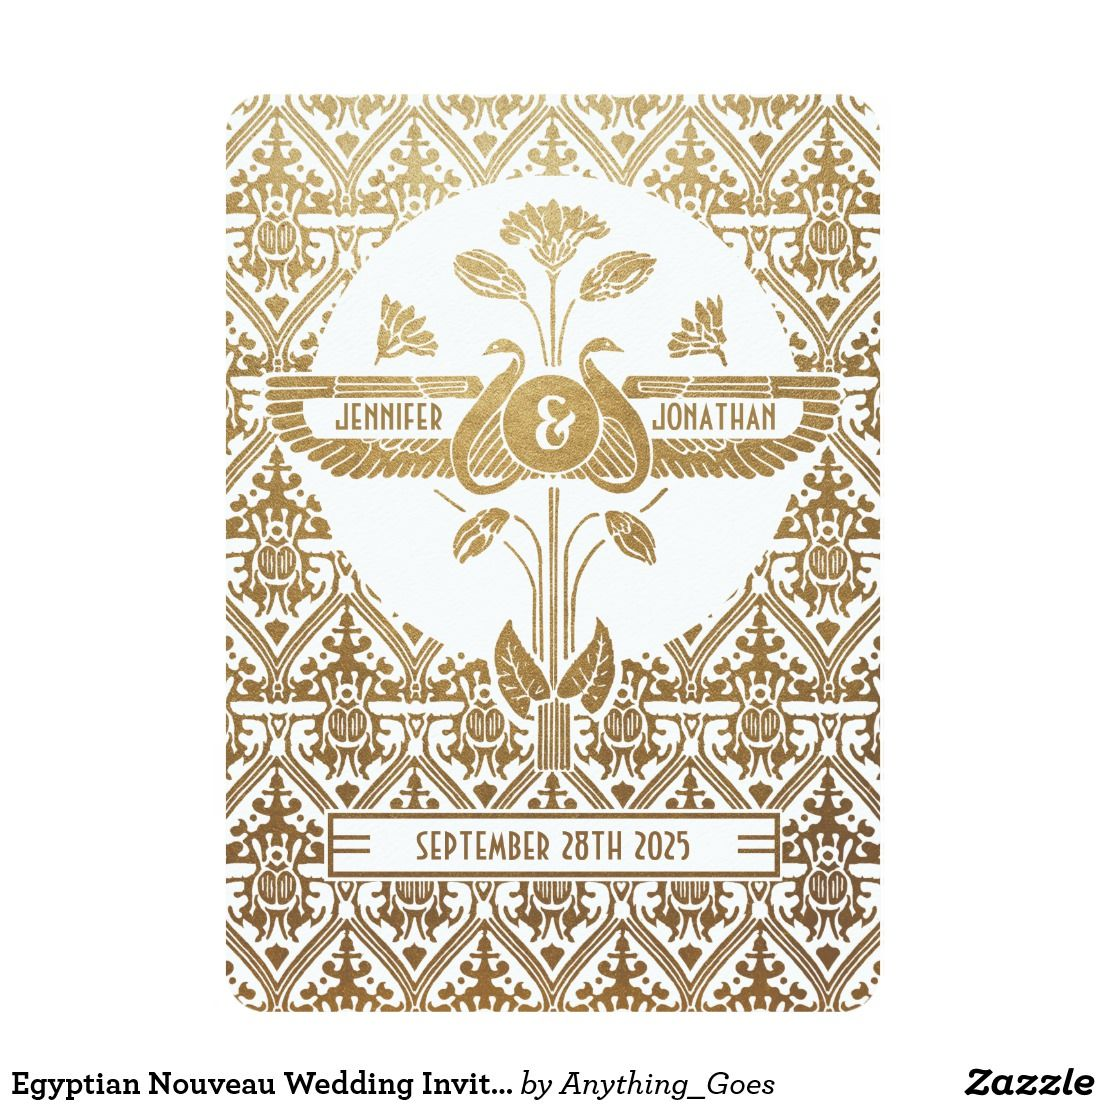 Egyptian Nouveau Wedding Invitations Gold & White | ARTE NOUVEAU ...